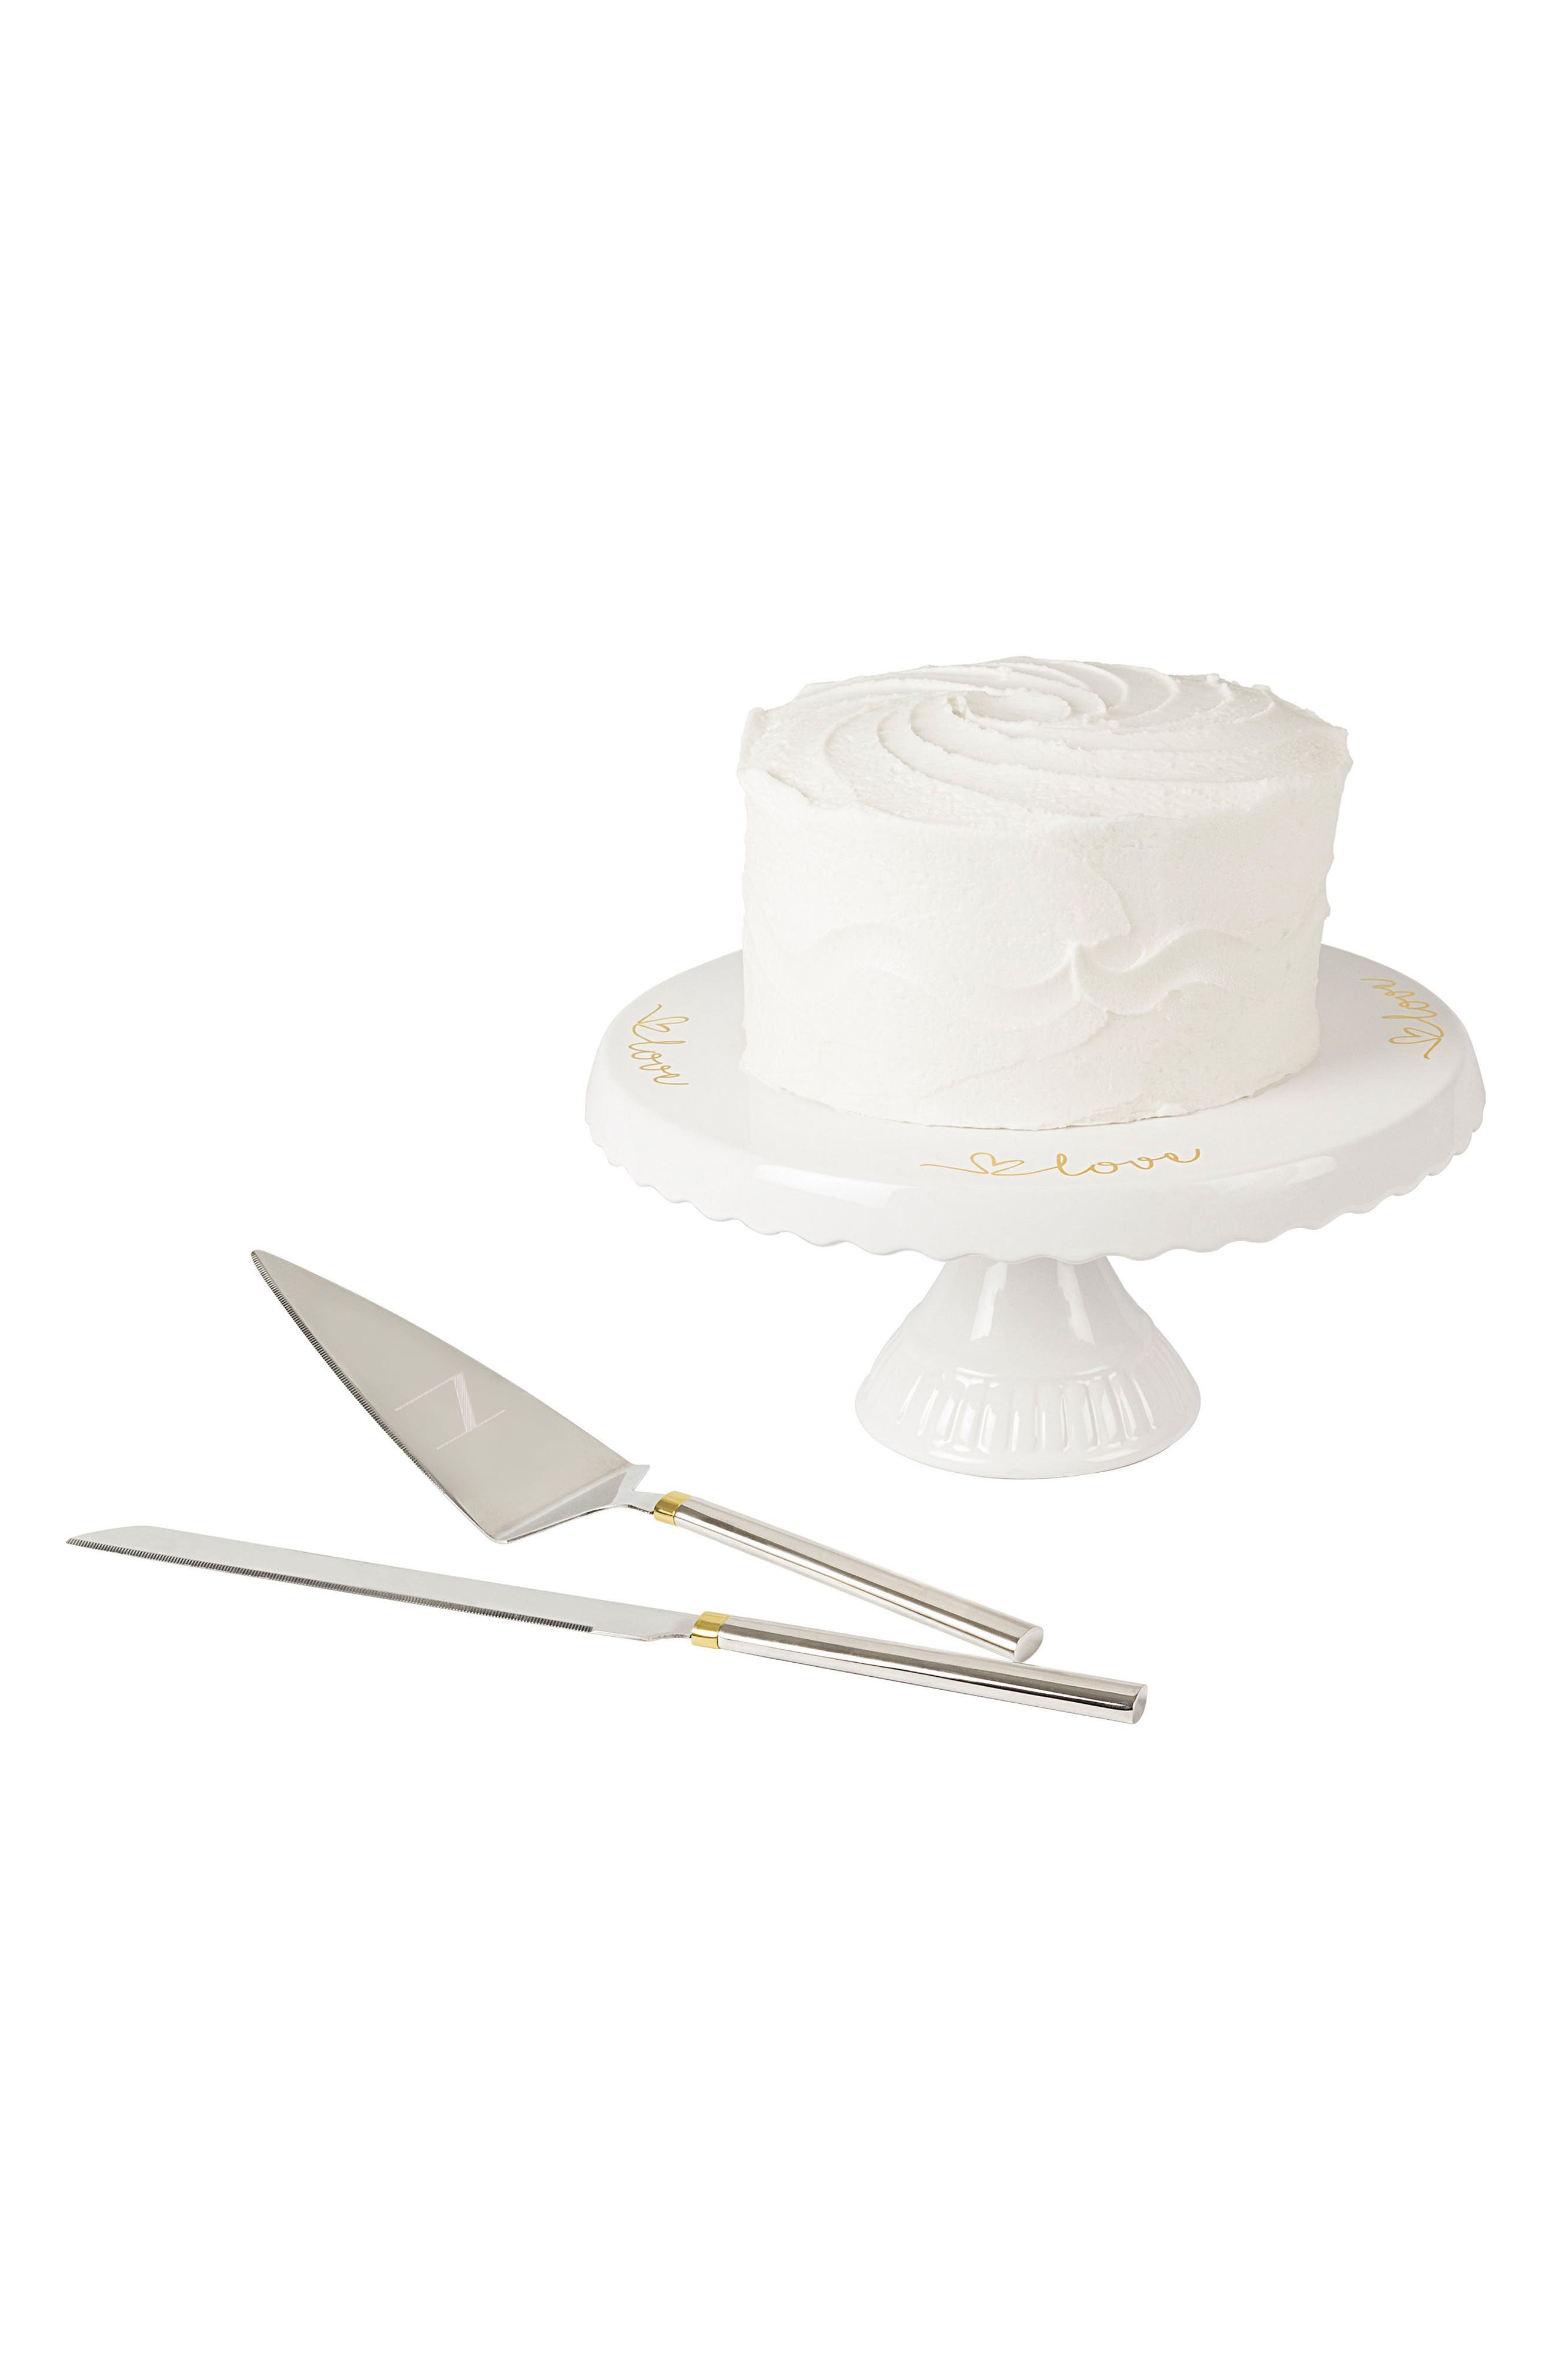 Love Monogram Cake Stand & Server Set,                             Main thumbnail 15, color,